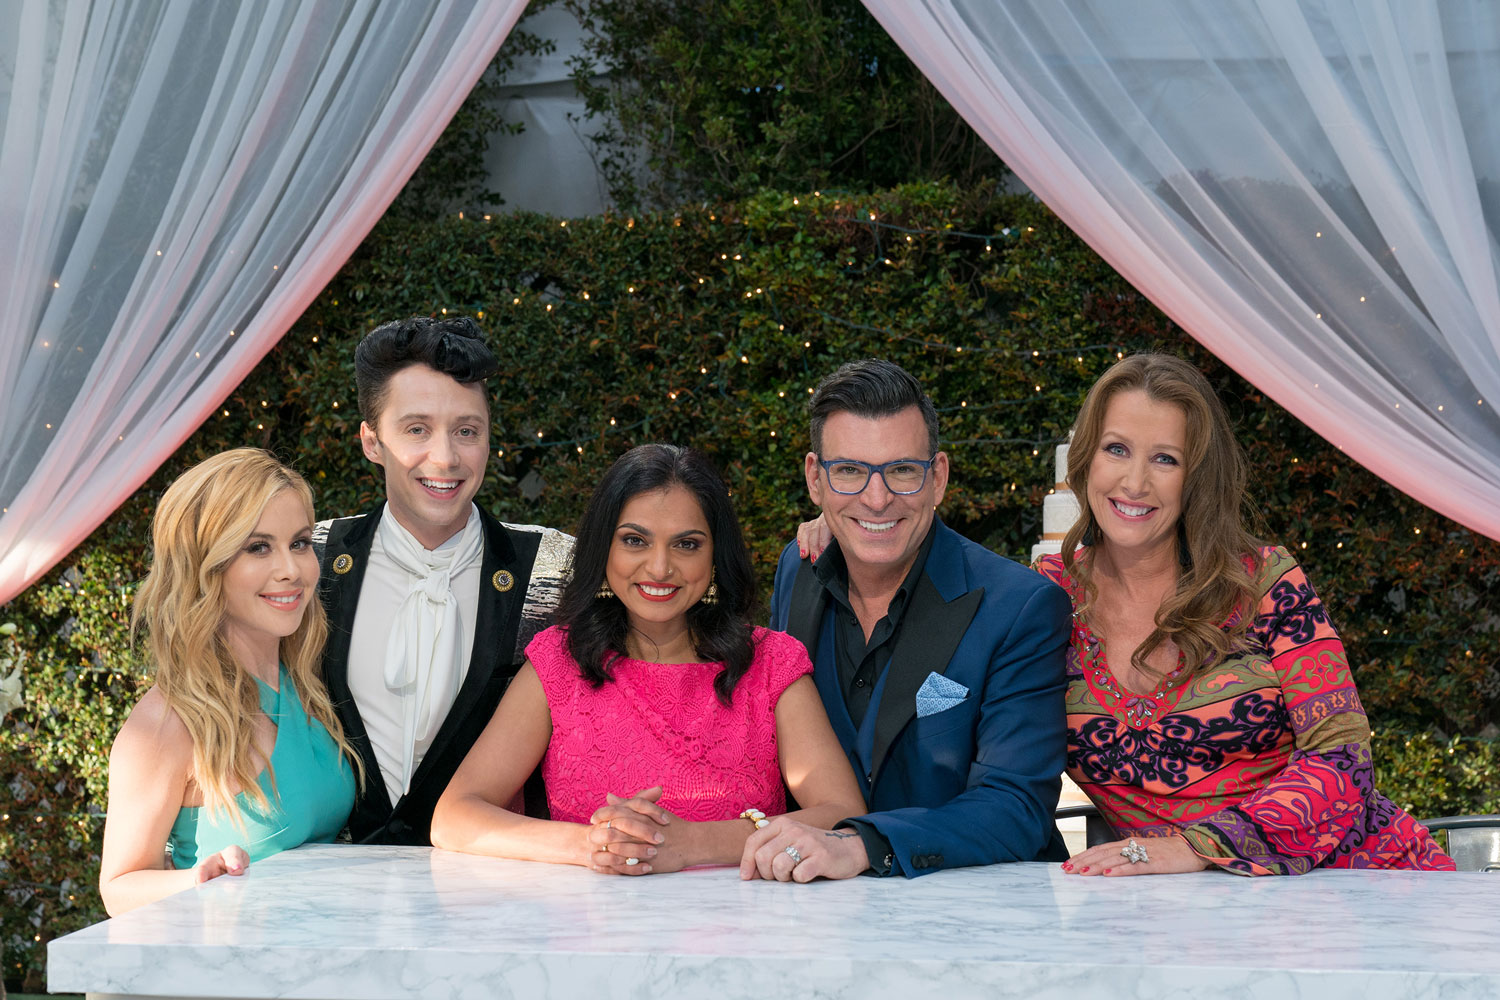 Tara Lipinski, Johnny Weir, Kimberly Bailey of The Butter End Cakery, Chopped judge Maneet Chauhan, and David Tutera